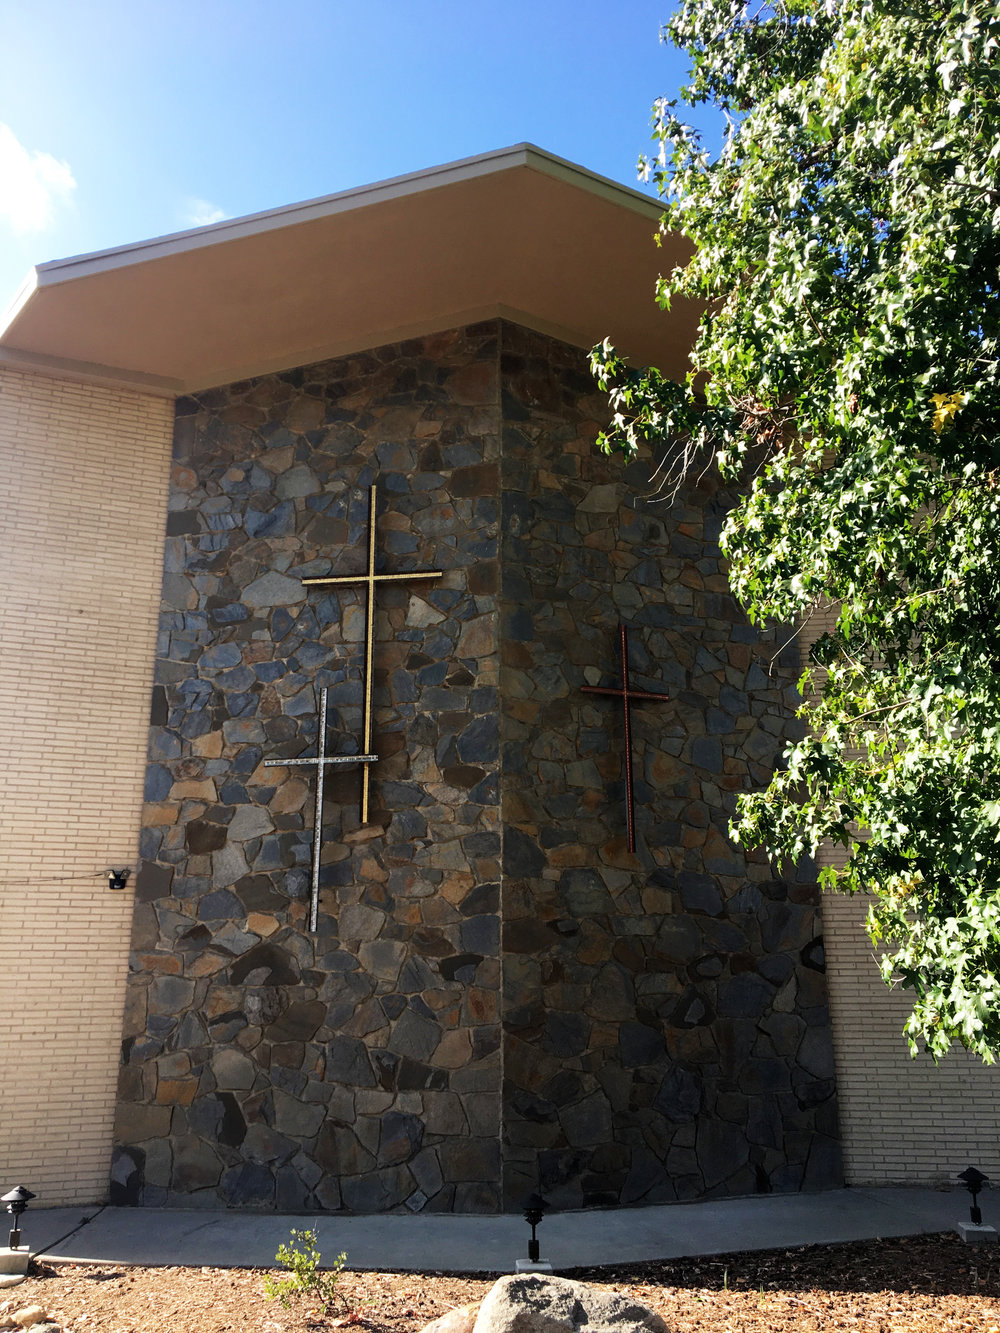 claremont-presbyterian-church-campus-tour-8.jpg